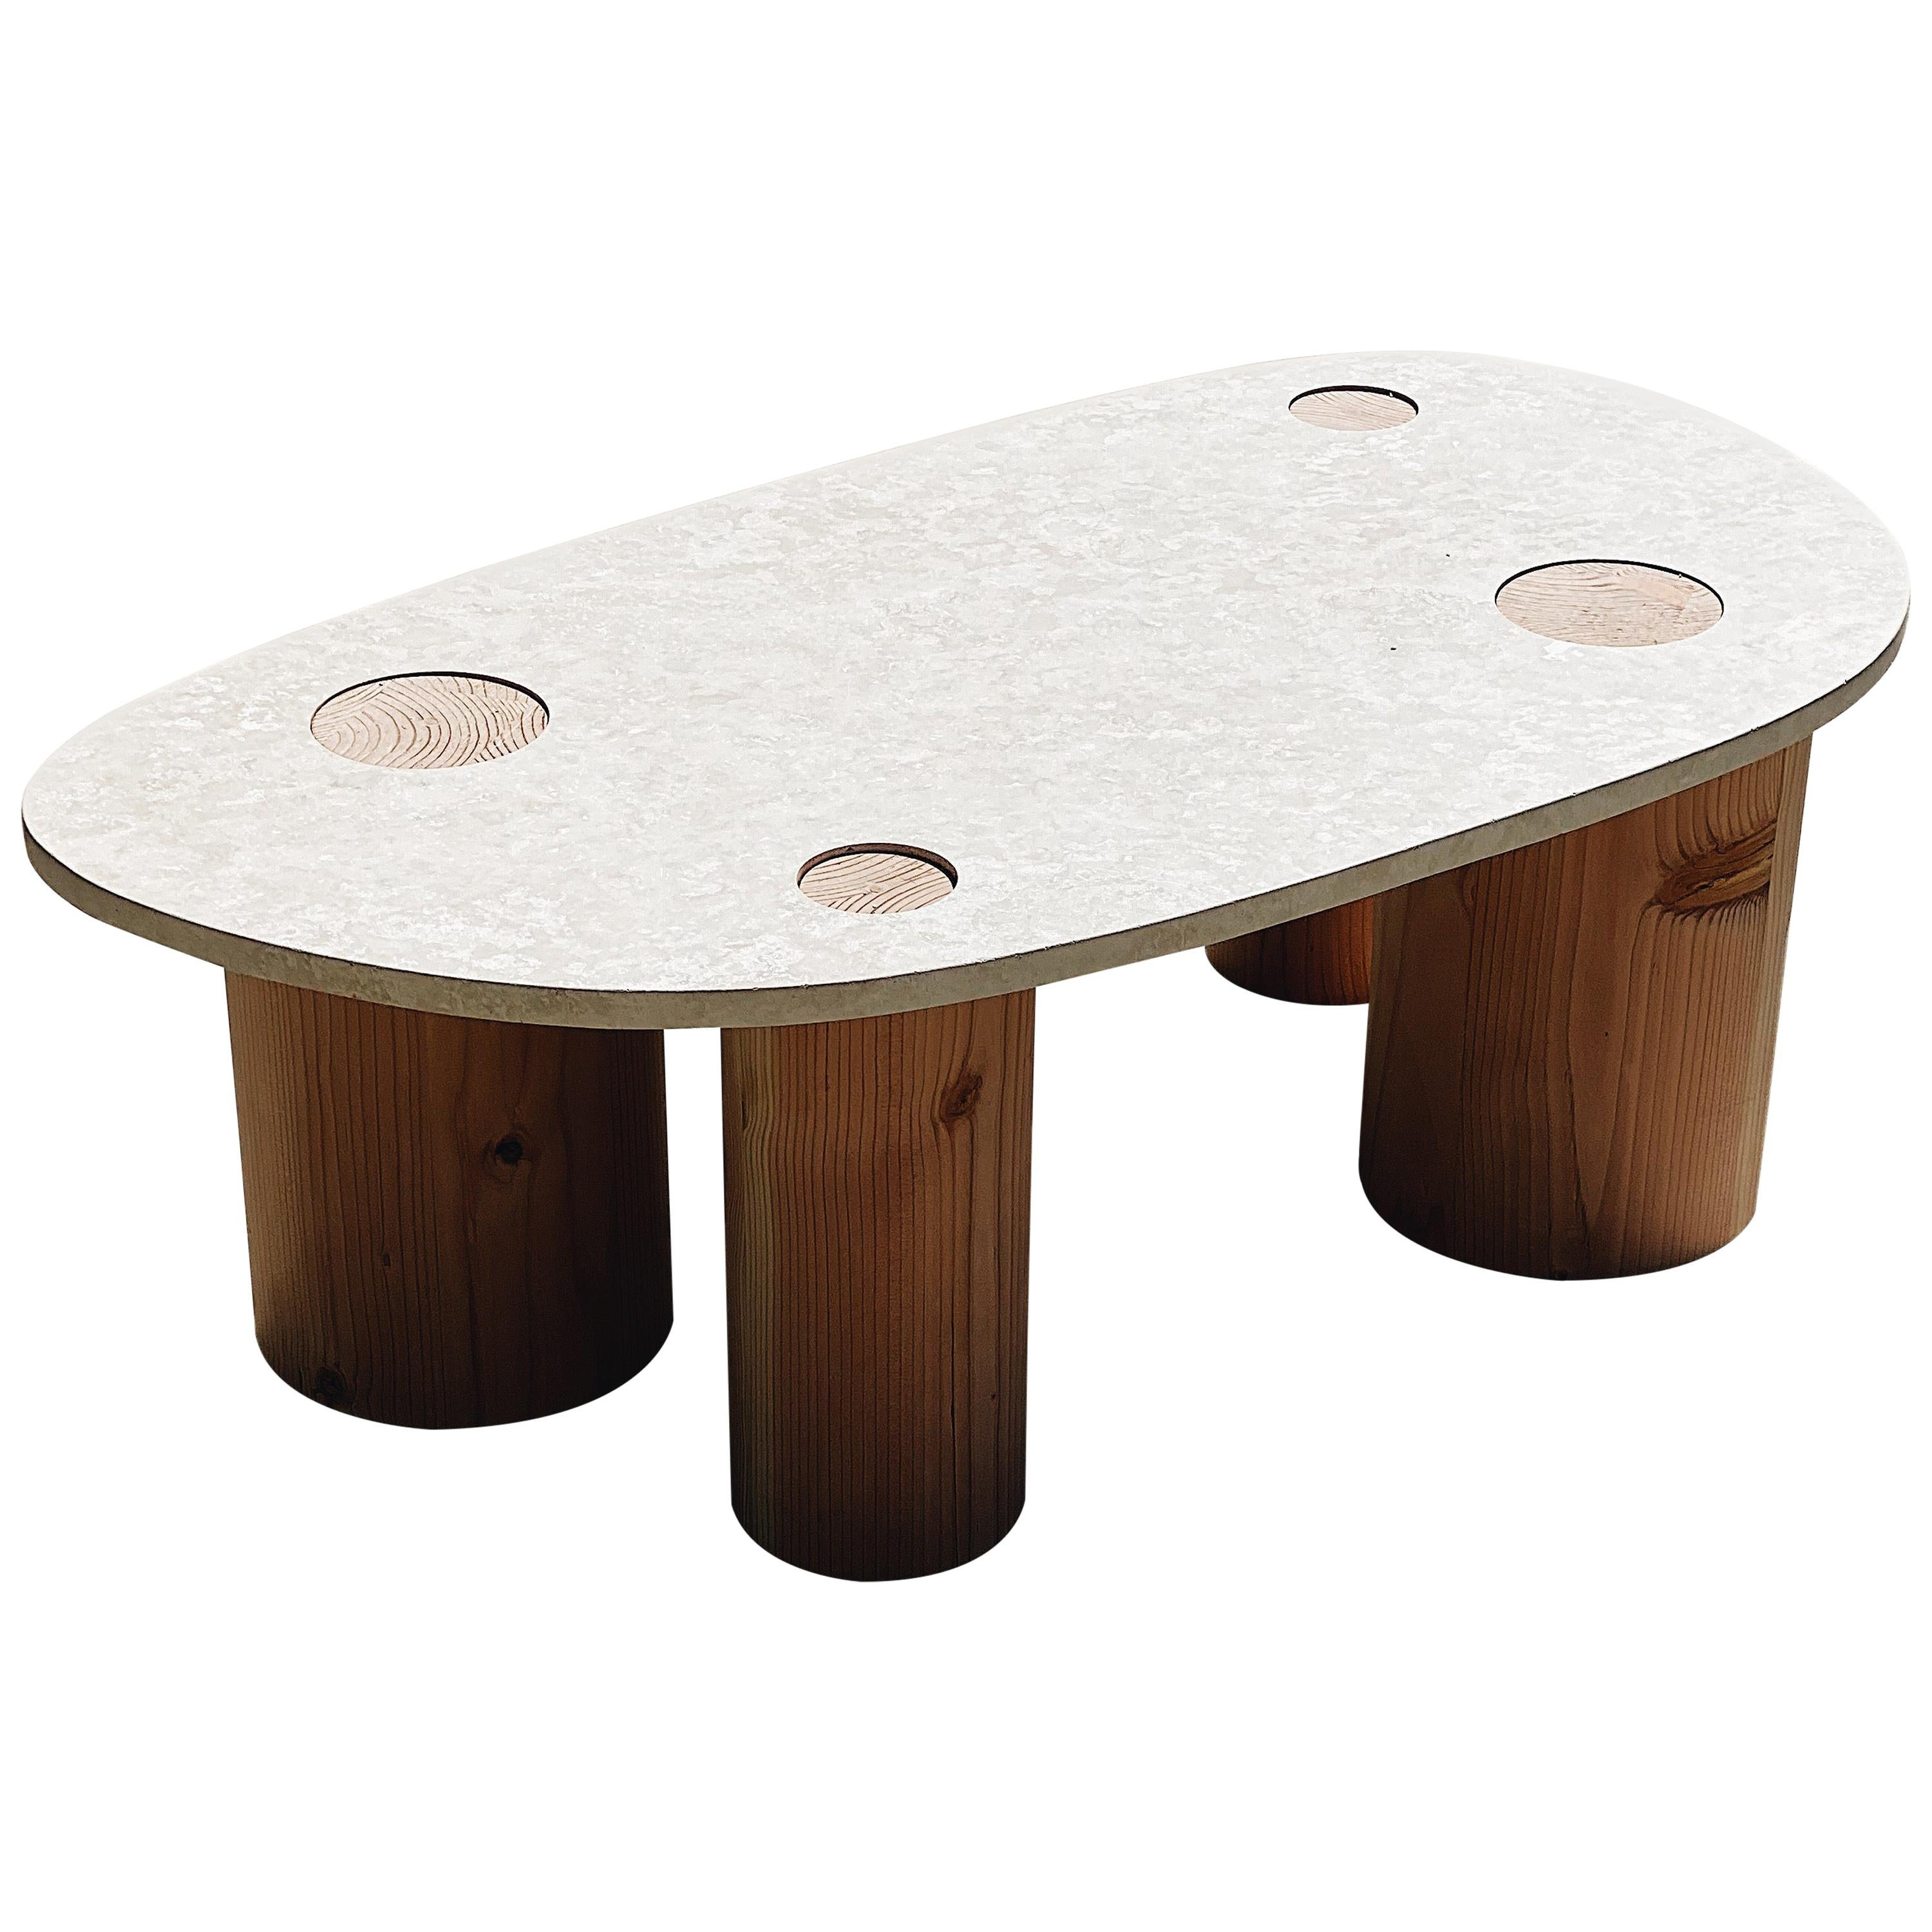 Minimal Coffee Table in Travertine Stone and Turned Solid Wood